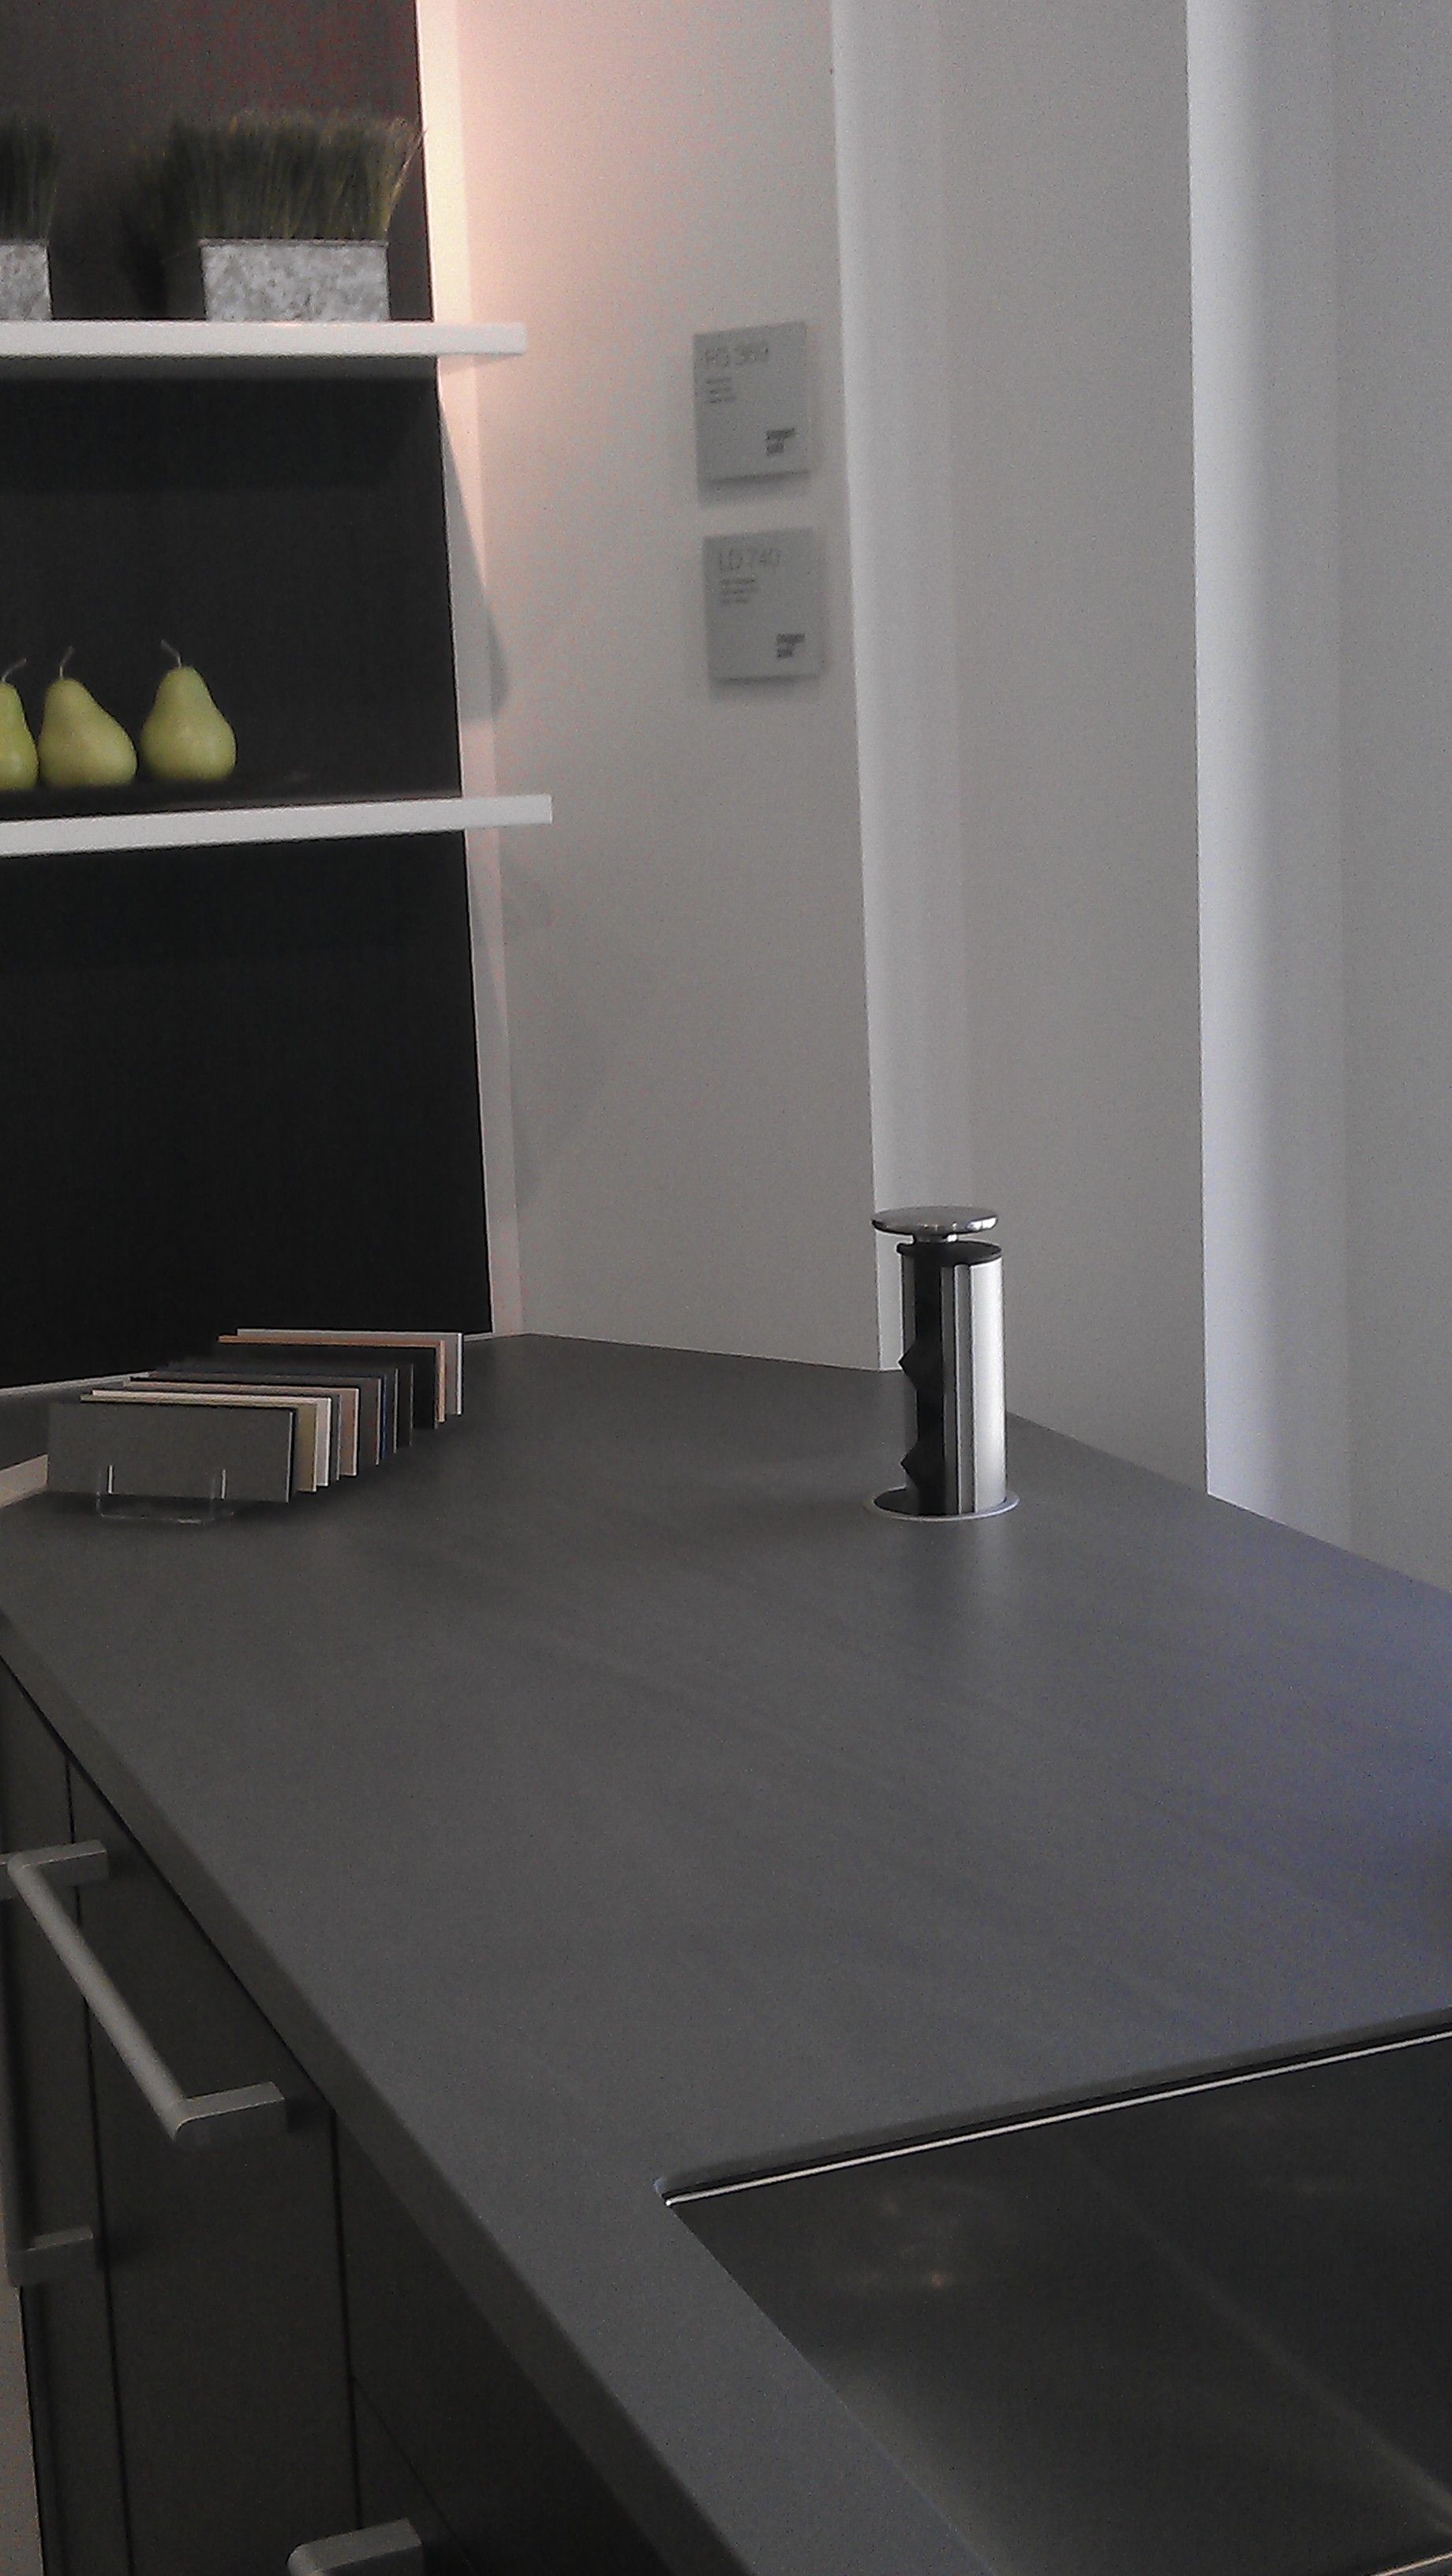 evoline port 1129 es with 2 sockets and a stainless steel lid